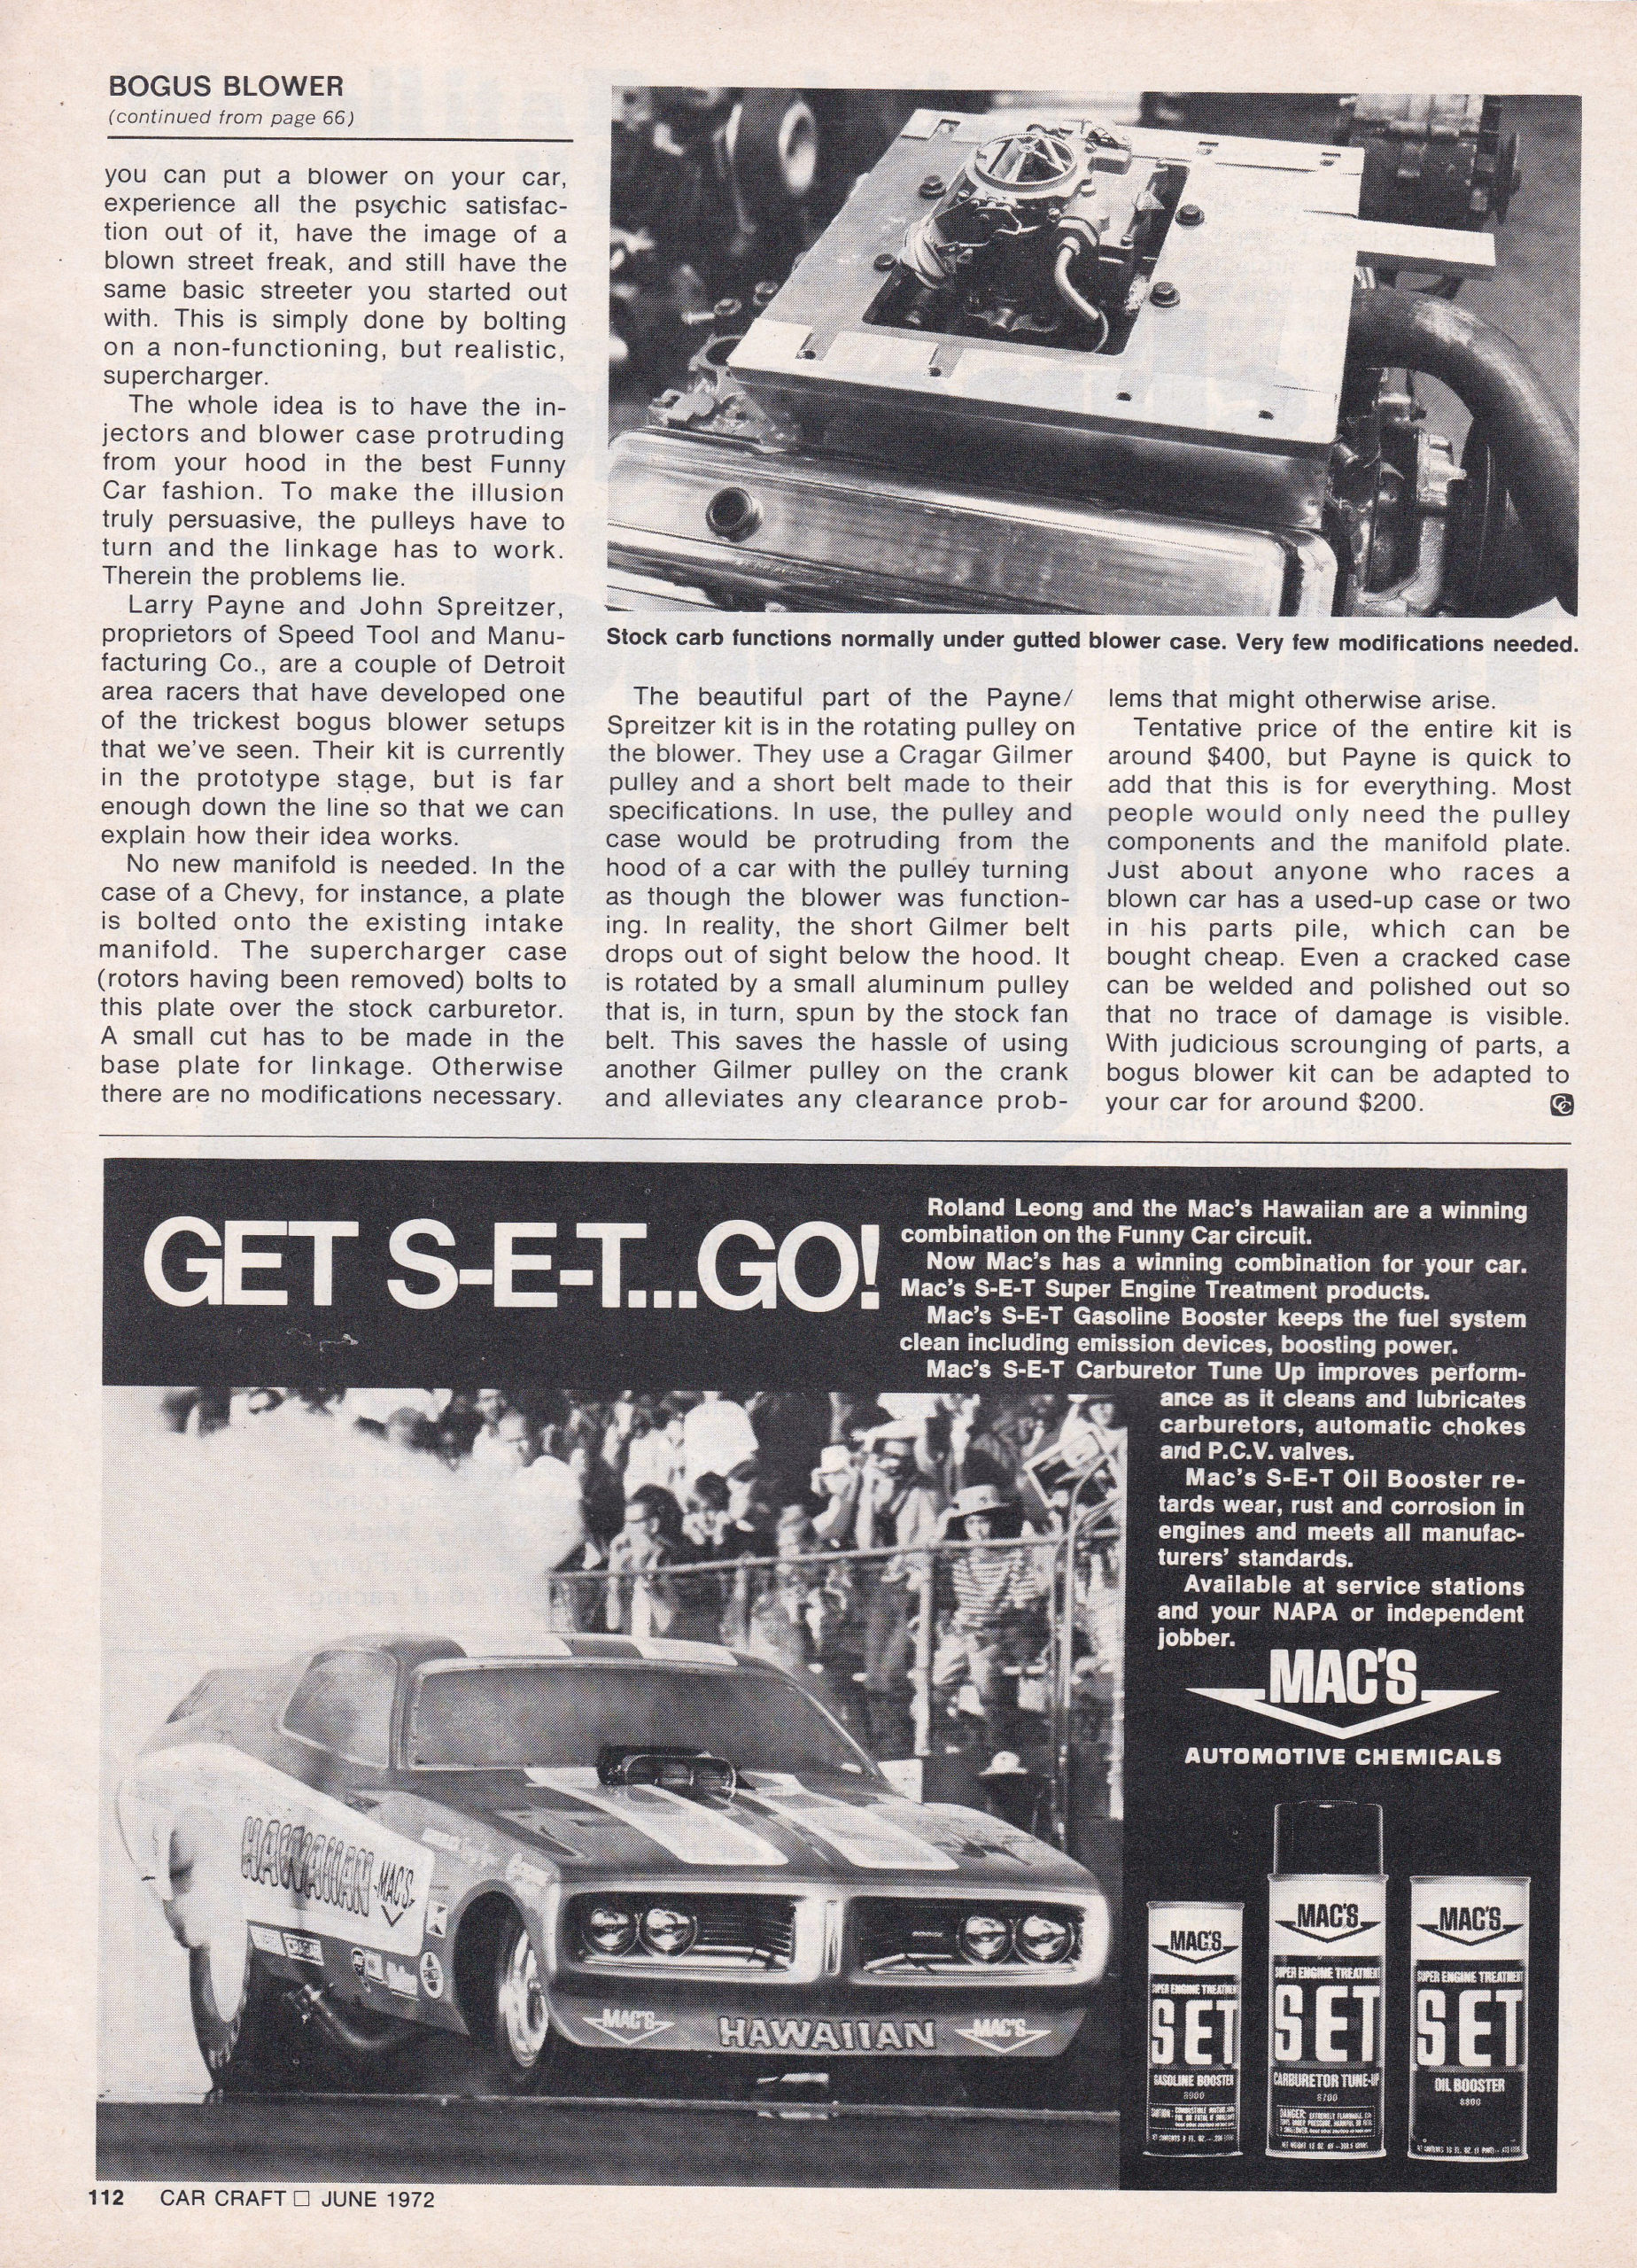 The Bogus Blower article from the June 1972 issue of Car Craft, page 2.